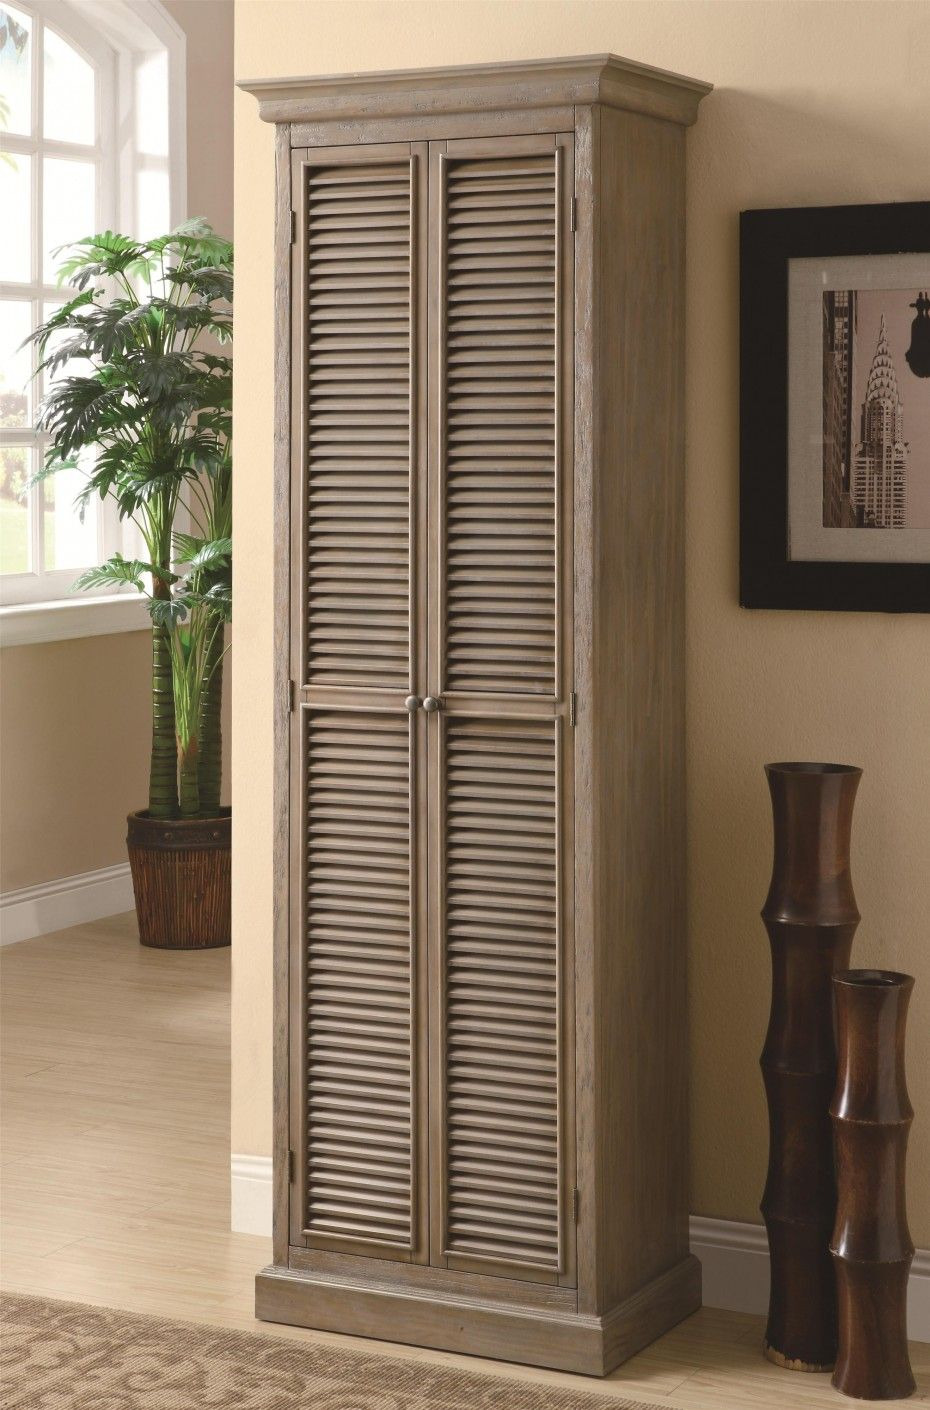 Tall Wood Storage Cabinets with Doors Beautiful Unpolished Shutter Door Tall Storage Cabinet Placed Cream